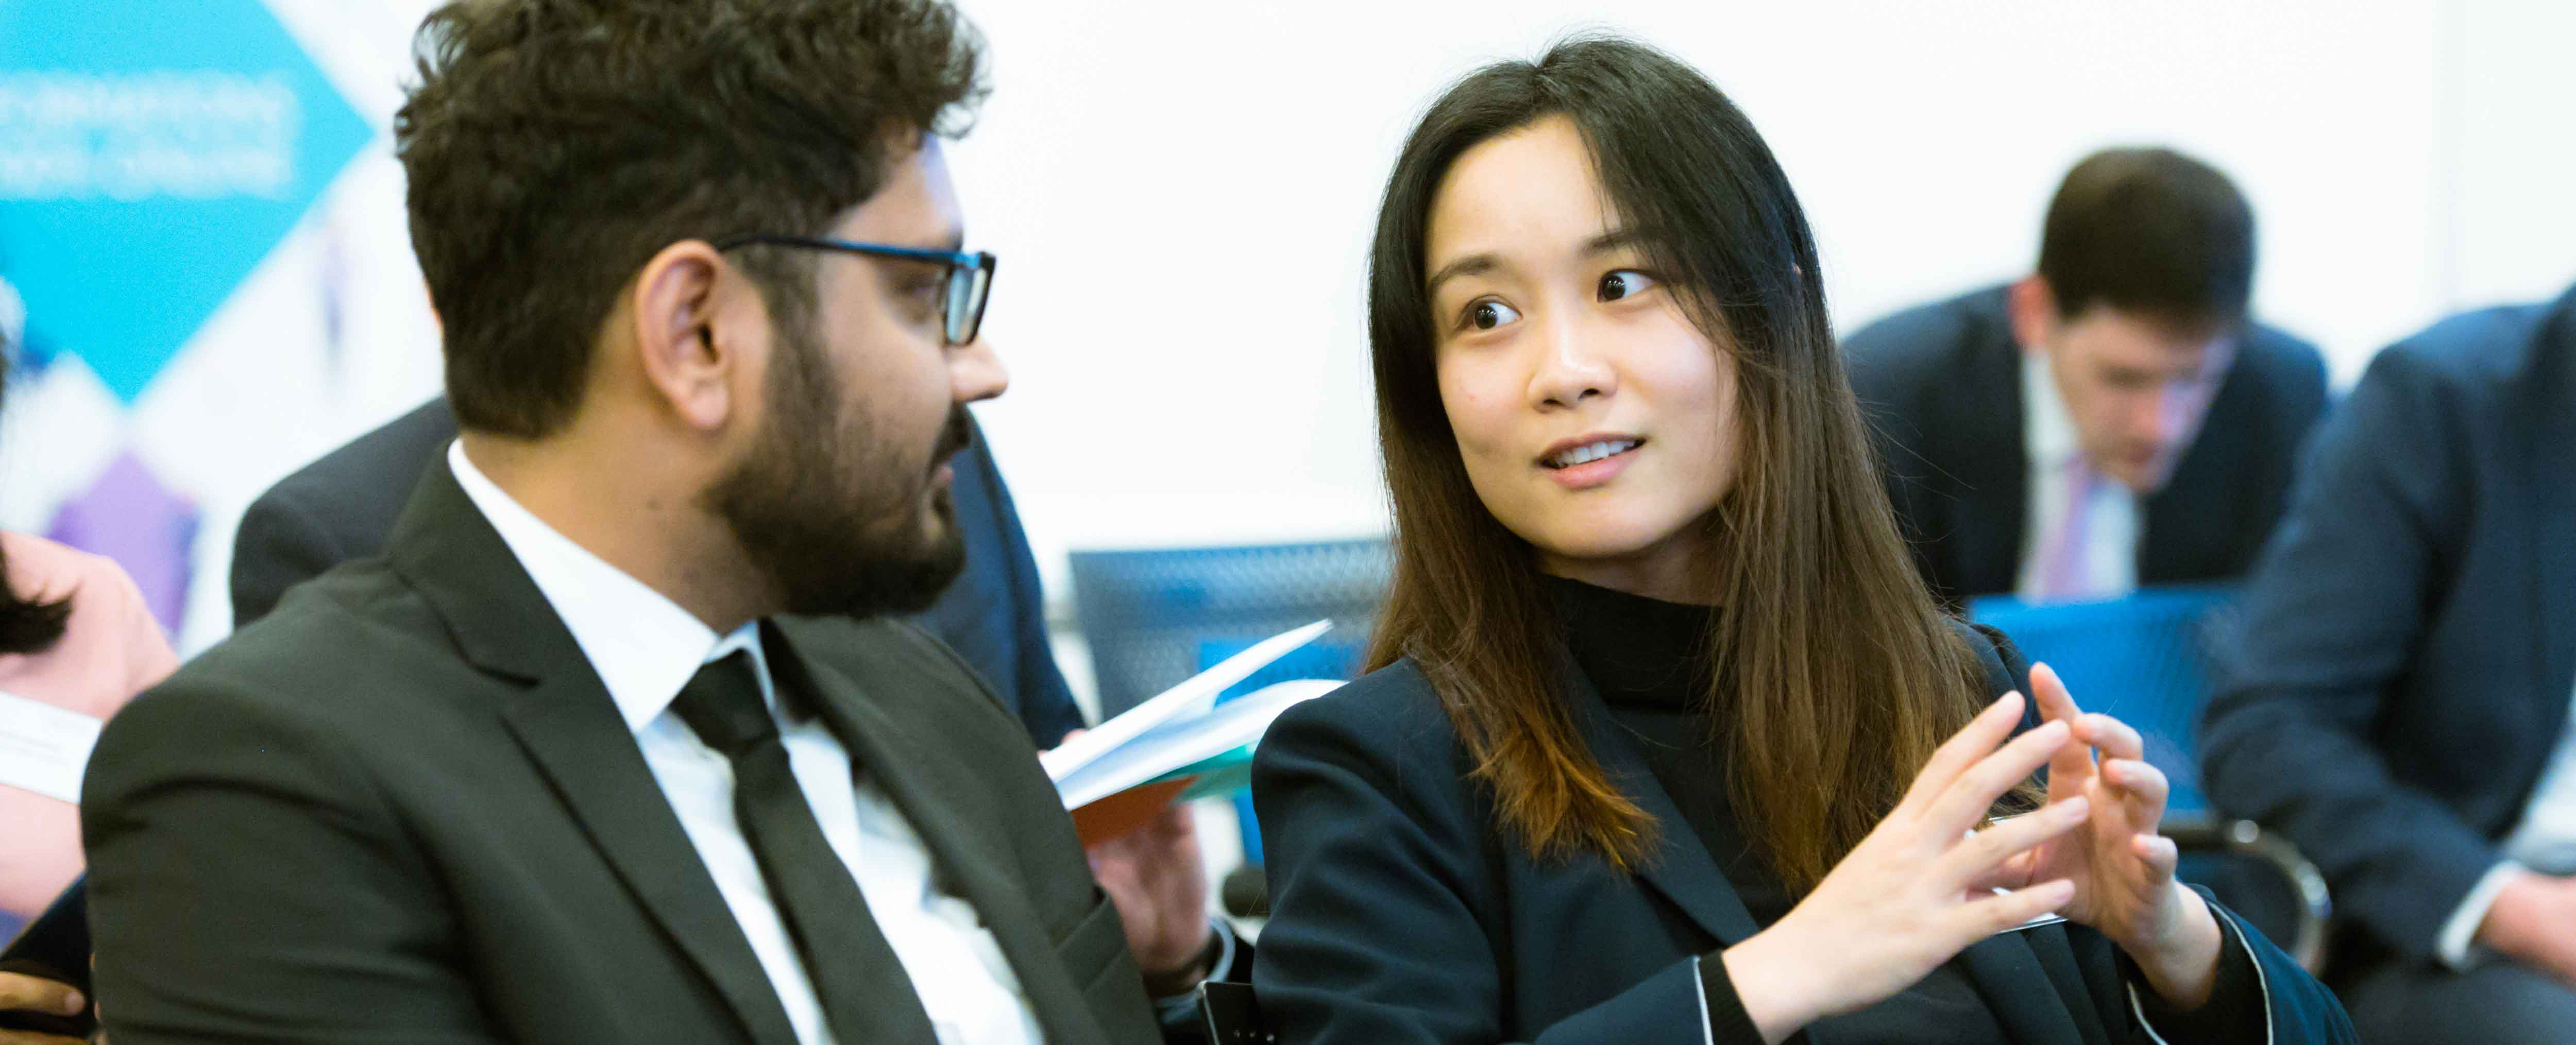 Starting Your Global MBA at EDHEC